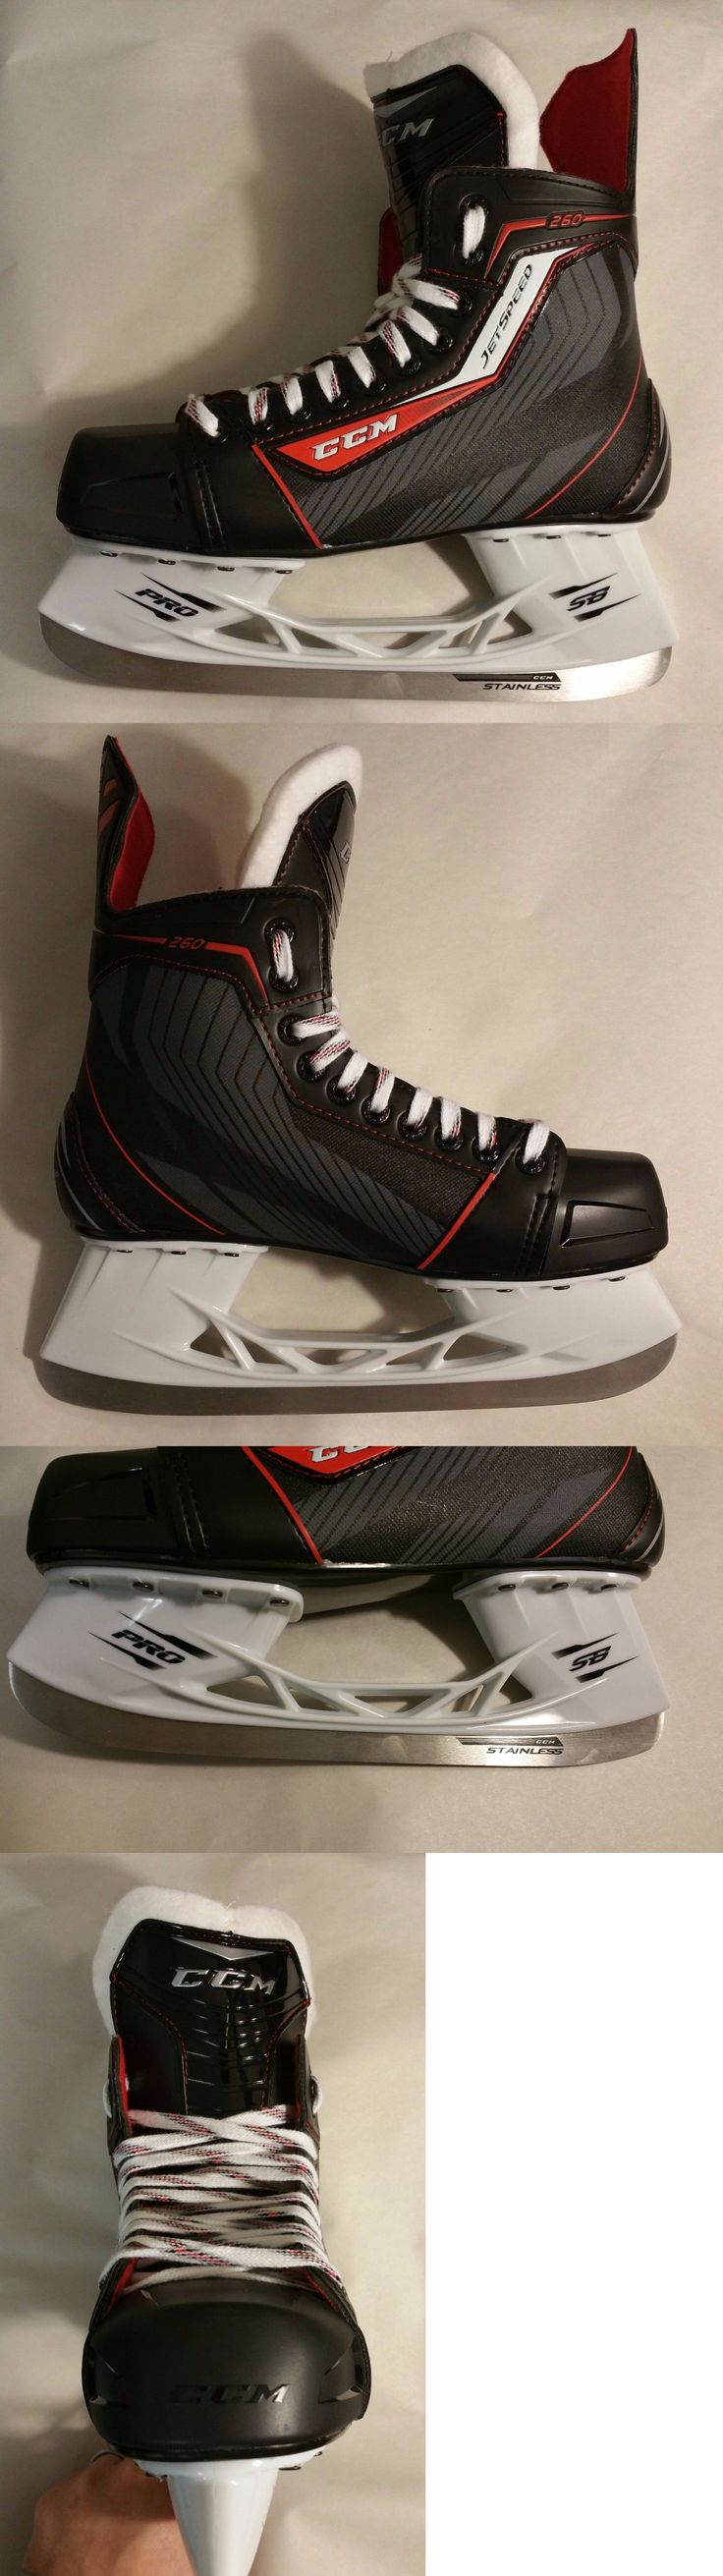 Ice Hockey-Youth 26342: Ccm Jetspeed 260 Ice Hockey Skate Junior Size 3 New In Box BUY IT NOW ONLY: $79.99